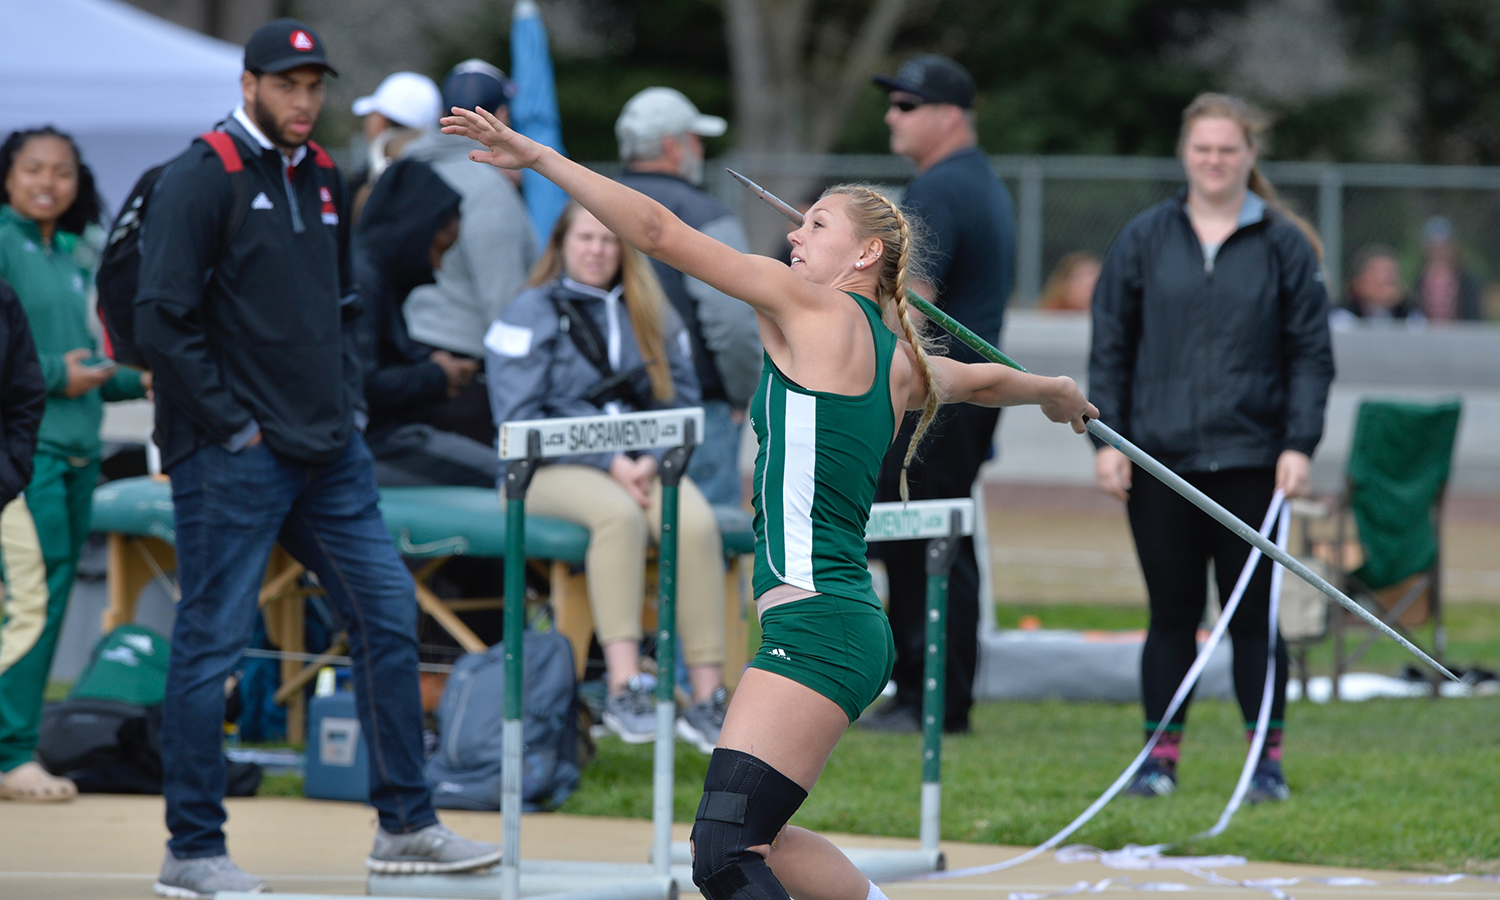 MEN'S AND WOMEN'S TRACK & FIELD FINISH SECOND AT SACRAMENTO STATE OPEN